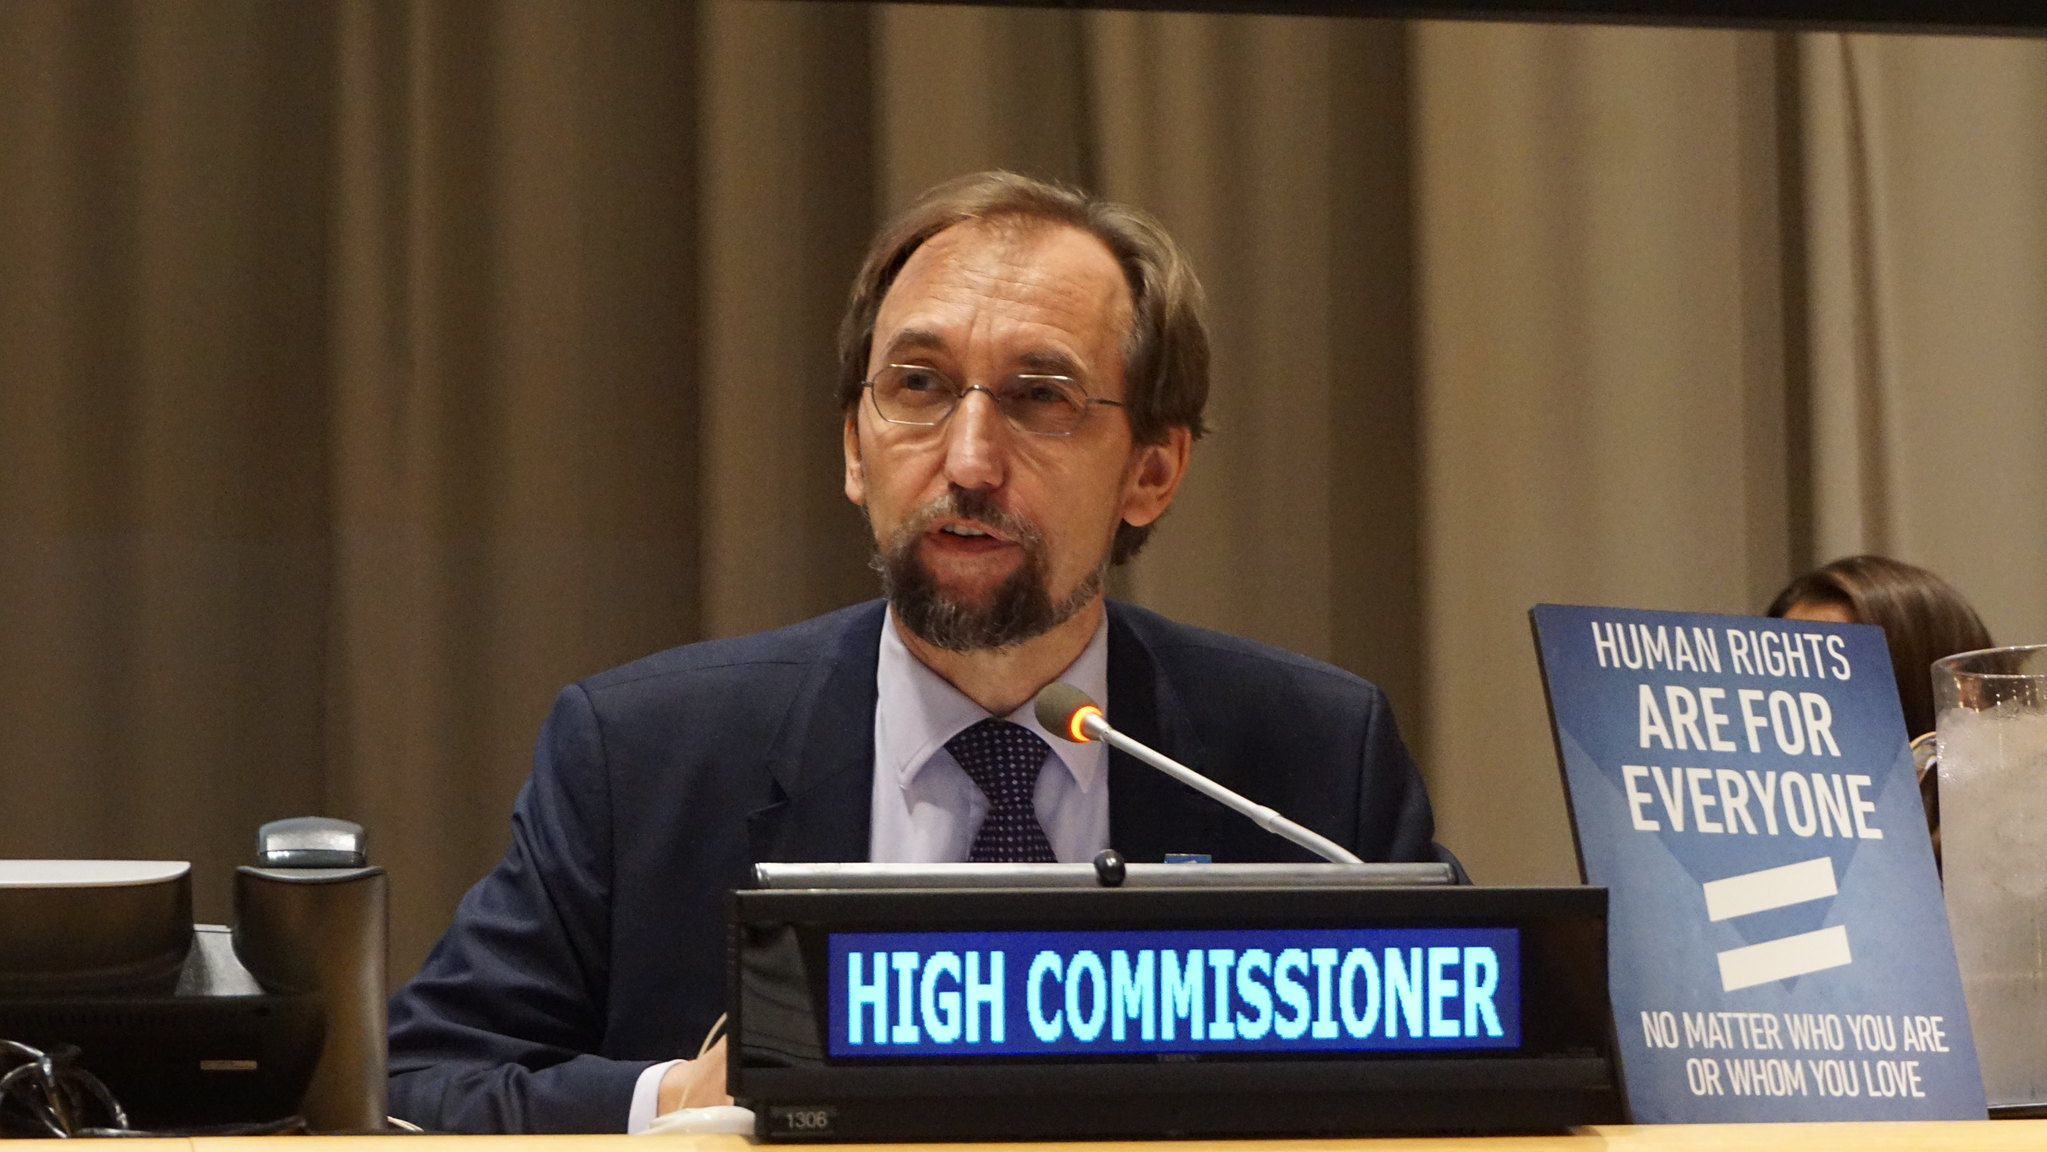 Zeid Ra'ad Al Hussein, High Commissioner for Human Rights